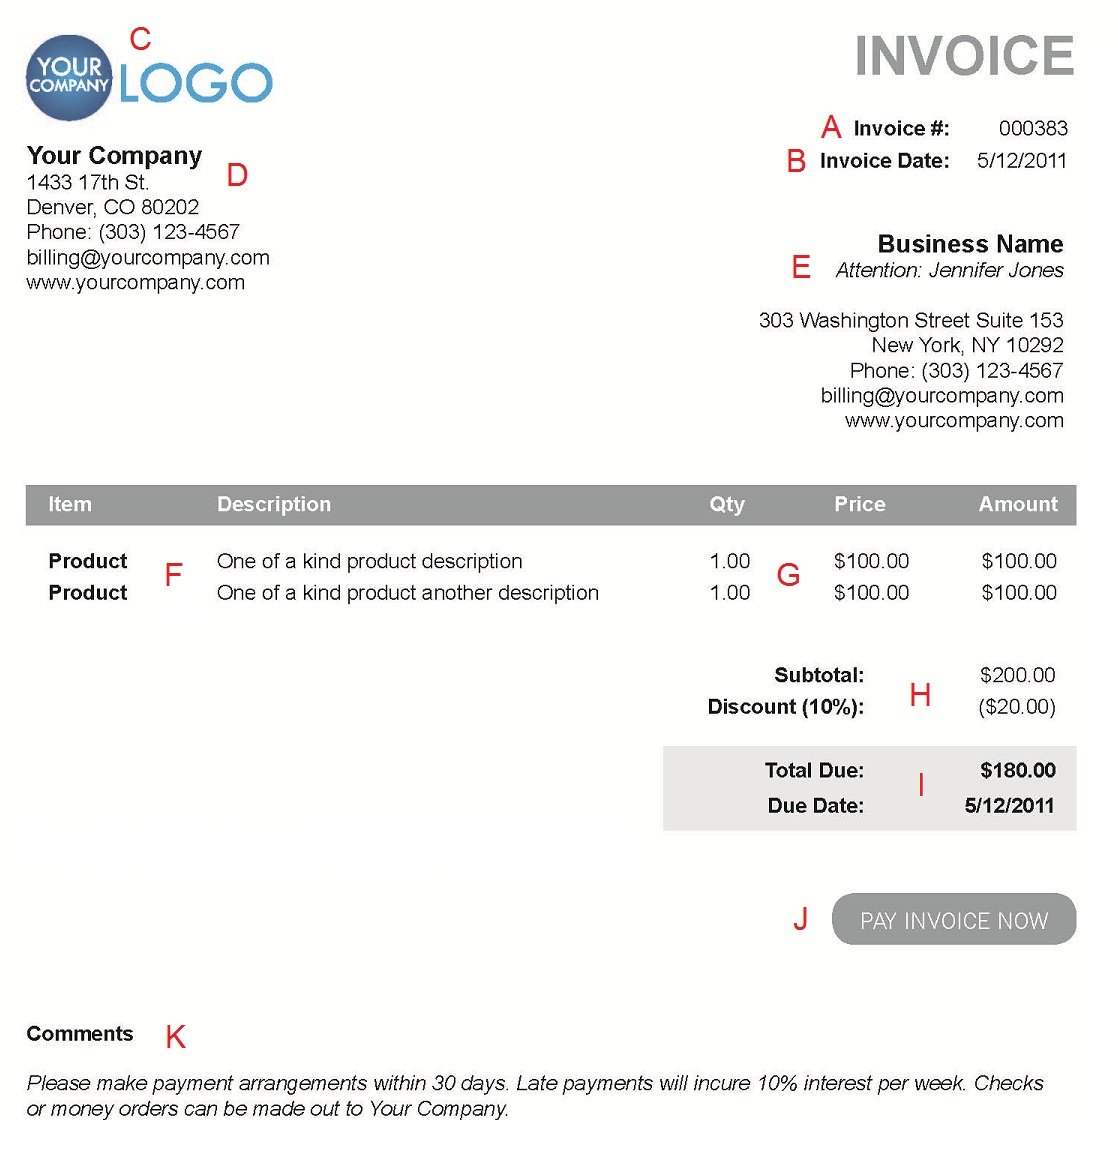 Coolmathgamesus  Scenic The  Different Sections Of An Electronic Payment Invoice With Fair A  With Agreeable Confirmation Of Receipt Of Email Also Macaroni And Cheese Receipt In Addition Where To Find Receipt Number And Lic Paid Receipt Online As Well As Format For Cash Receipt Additionally Consignment Receipt From Paysimplecom With Coolmathgamesus  Fair The  Different Sections Of An Electronic Payment Invoice With Agreeable A  And Scenic Confirmation Of Receipt Of Email Also Macaroni And Cheese Receipt In Addition Where To Find Receipt Number From Paysimplecom